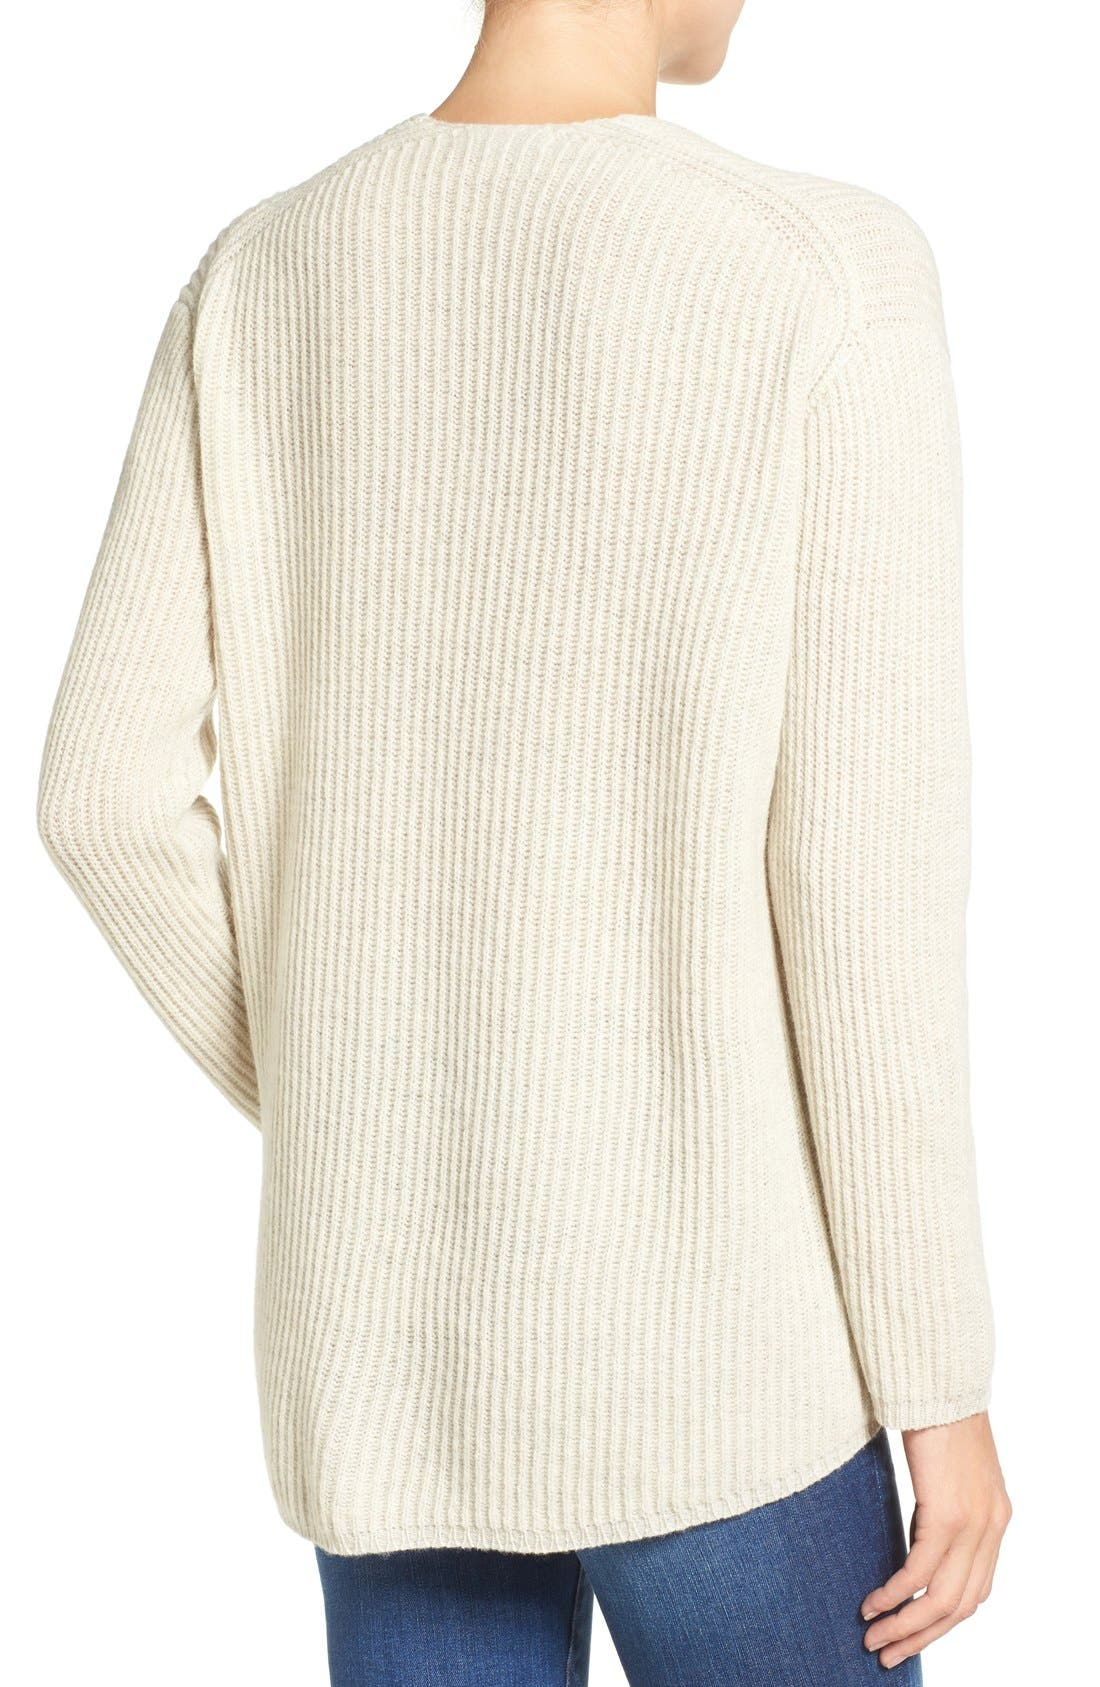 Woodside Pullover Sweater,                             Alternate thumbnail 18, color,